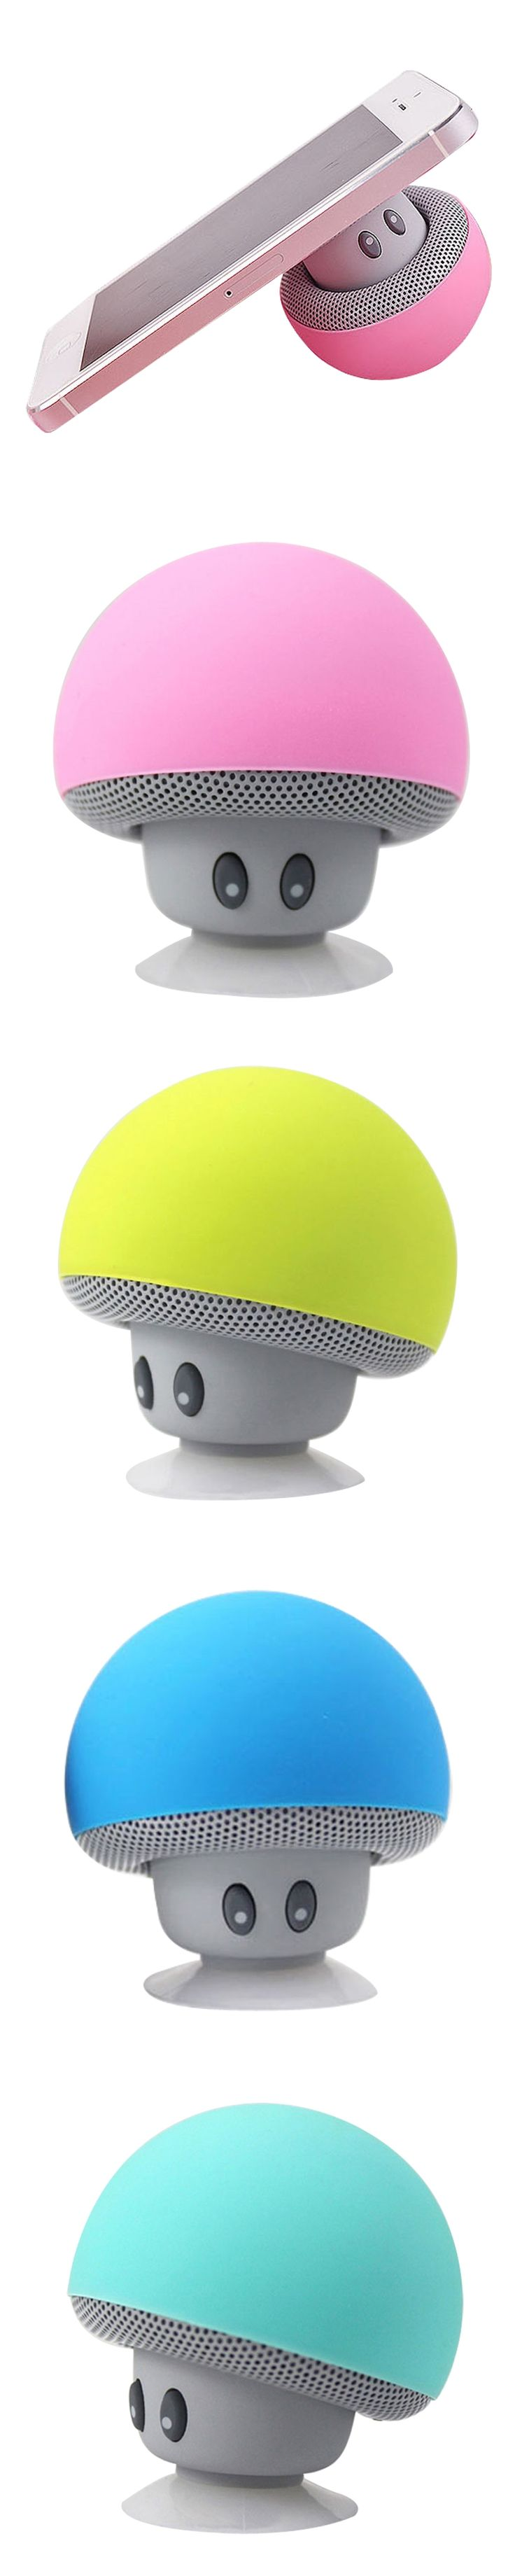 Wireless Mini Bluetooth Speaker Portable Mushroom Waterproof Stereo Bluetooth4.1 Speaker for Mobile Phone iPhone Xiaomi Computer